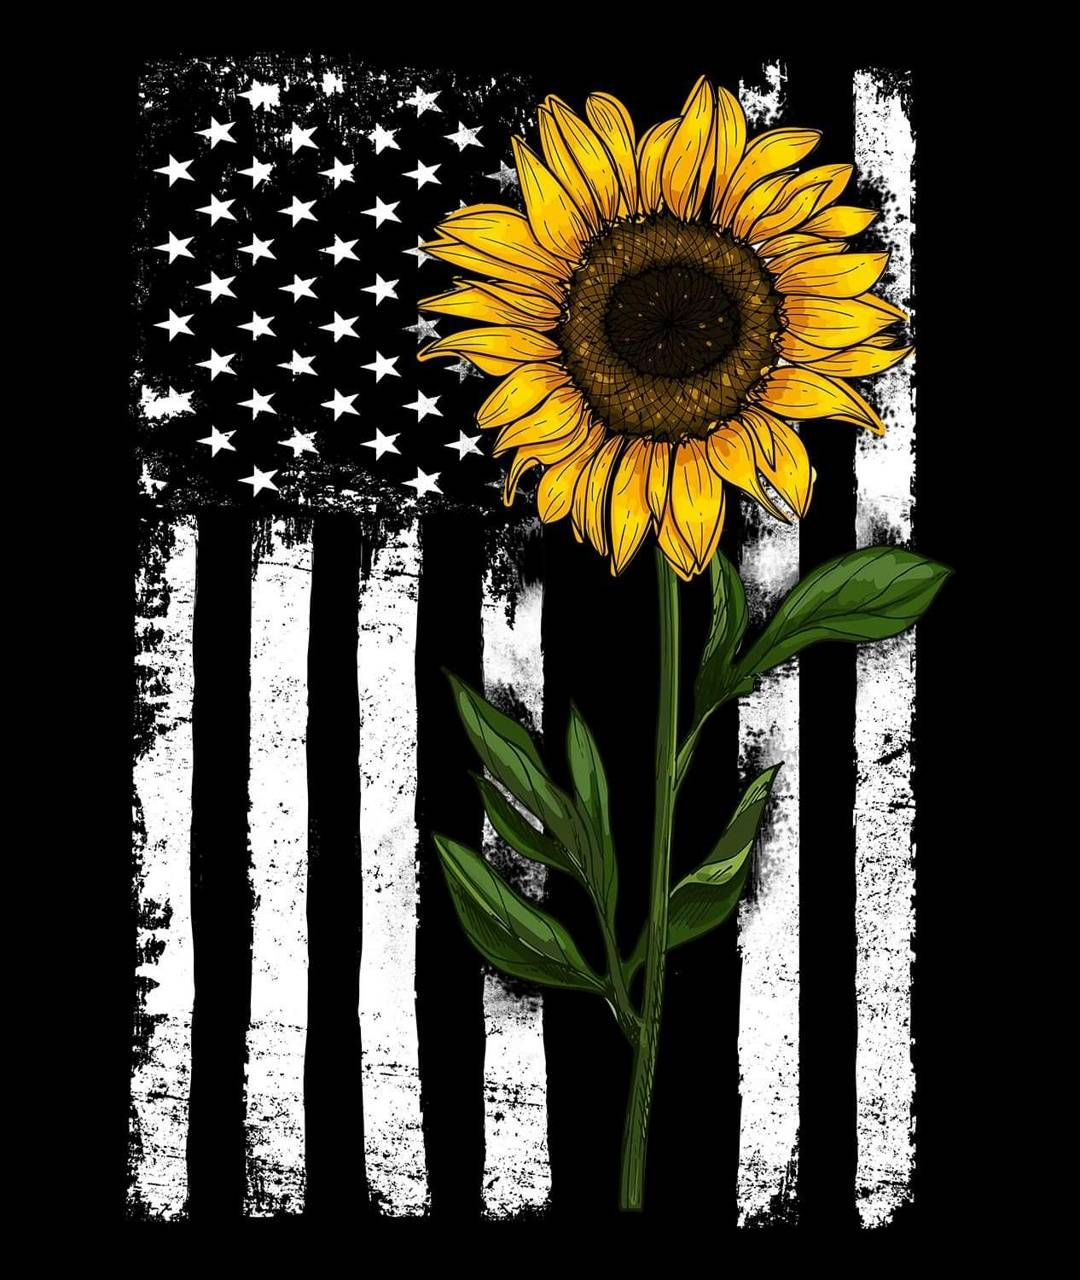 Sunflower and flag wallpaper by CxCx90810 - 9c - Free on ZEDGE™